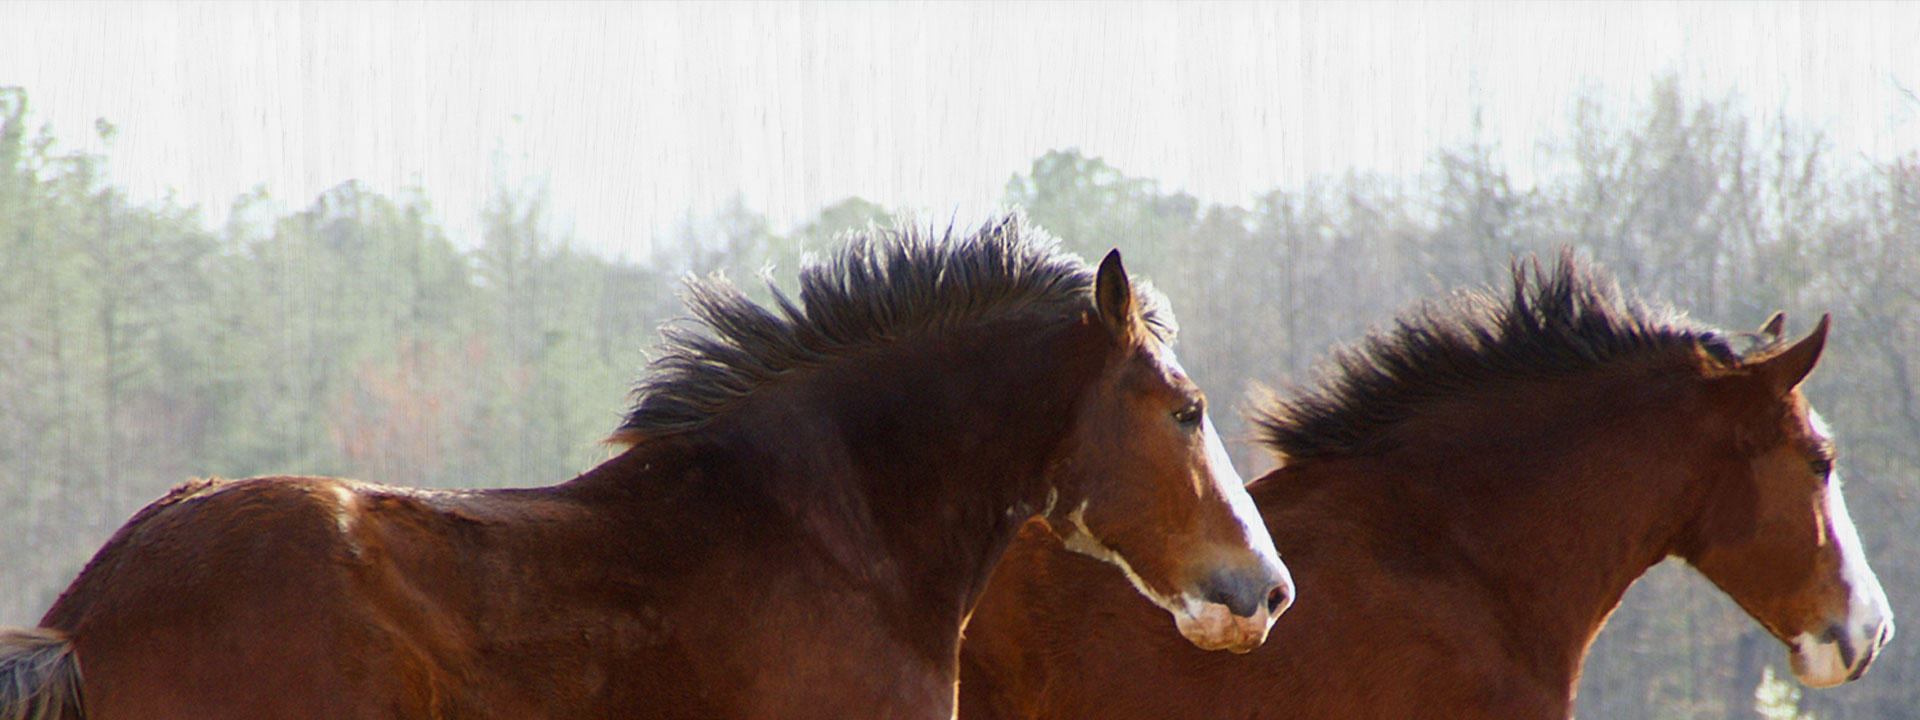 Clydesdale Horses Running Through Field